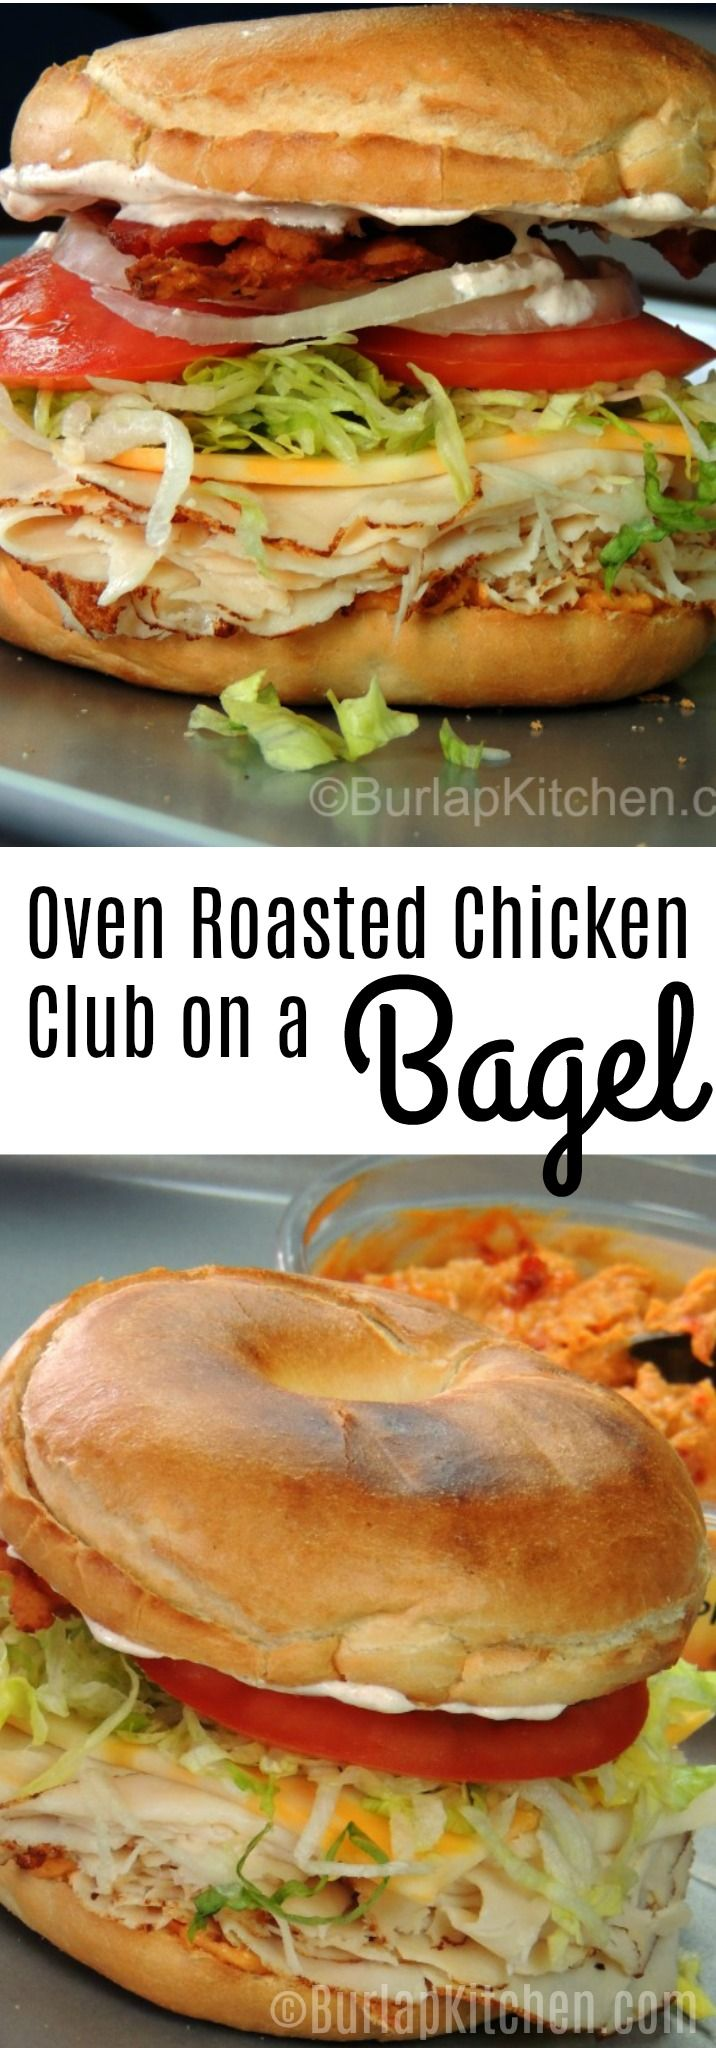 The bottom half of the bagel is smothered with roasted red paper hummus, which leaves just the right amount of bite. A little spice but not too much. This sandwich is stuffed with all kinds of goodies such as Chicken  lunch meat, cheese, lettuce, tomato, onion, and  bacon. We then decided it needed a big glob of one of our all time favorite dips on the top, spicy ranch dip. Adding the dip just adds a notably cool element to the sandwich that was much needed.